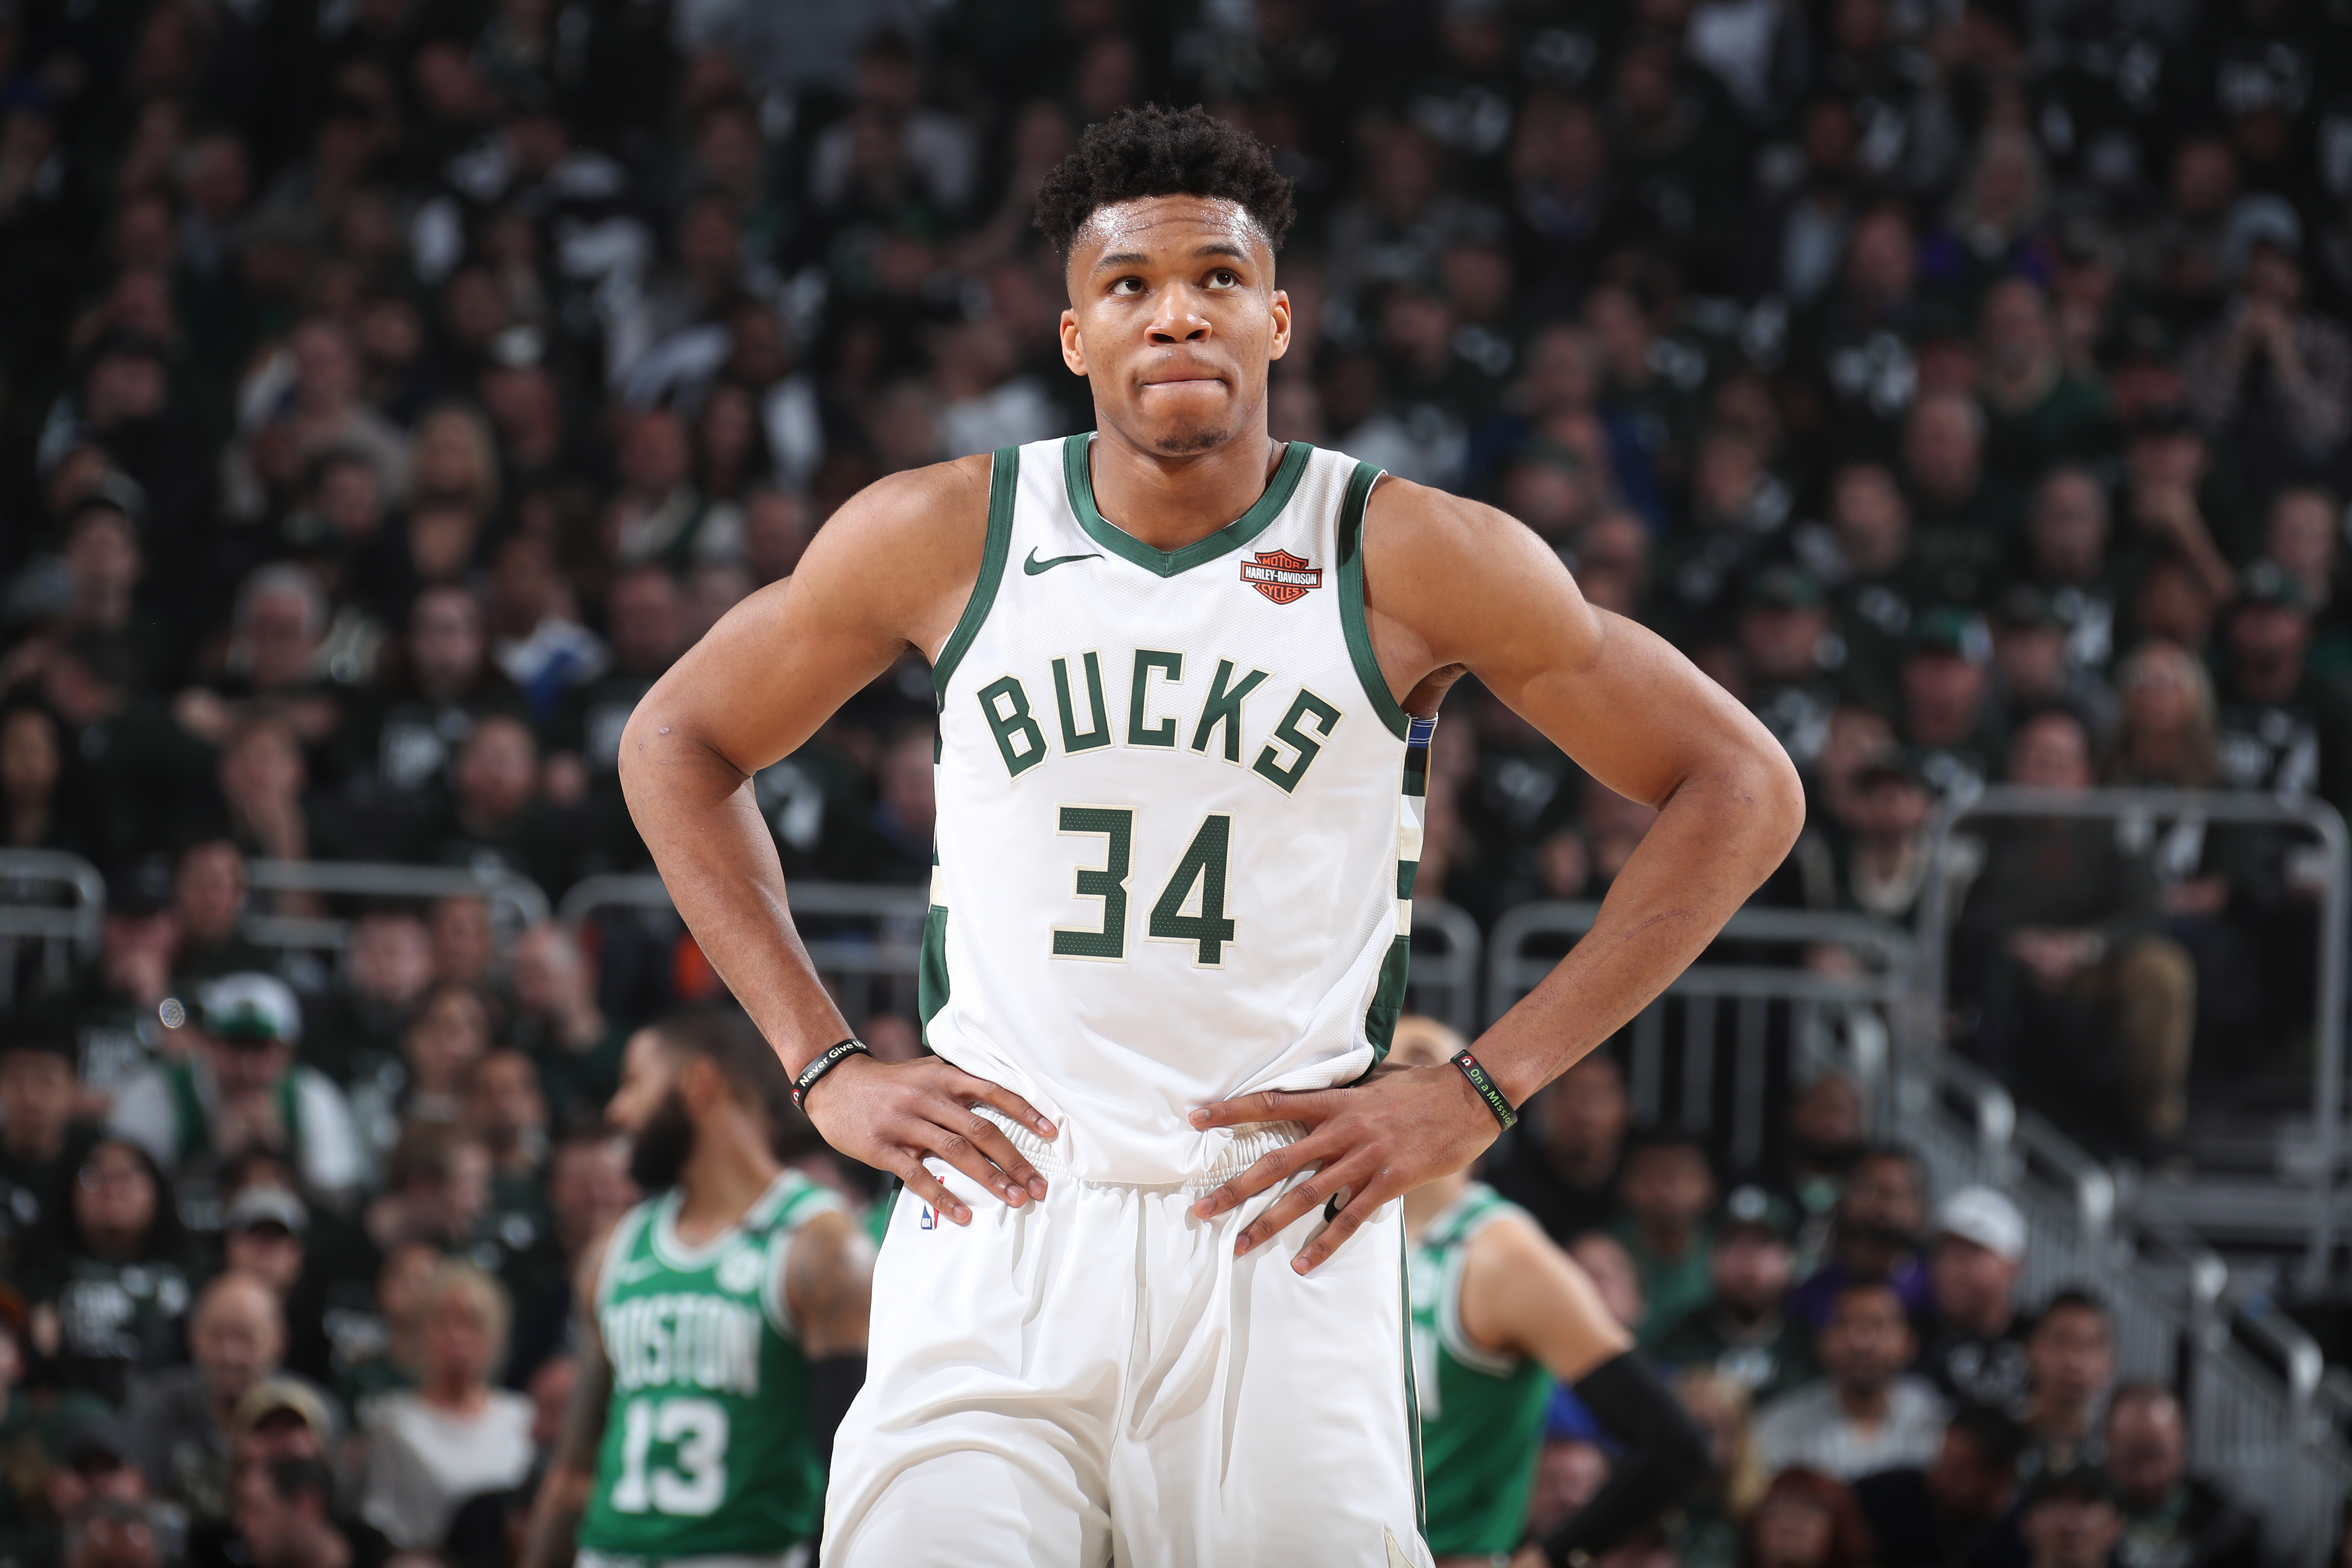 Are the Bucks the favorite in the East?